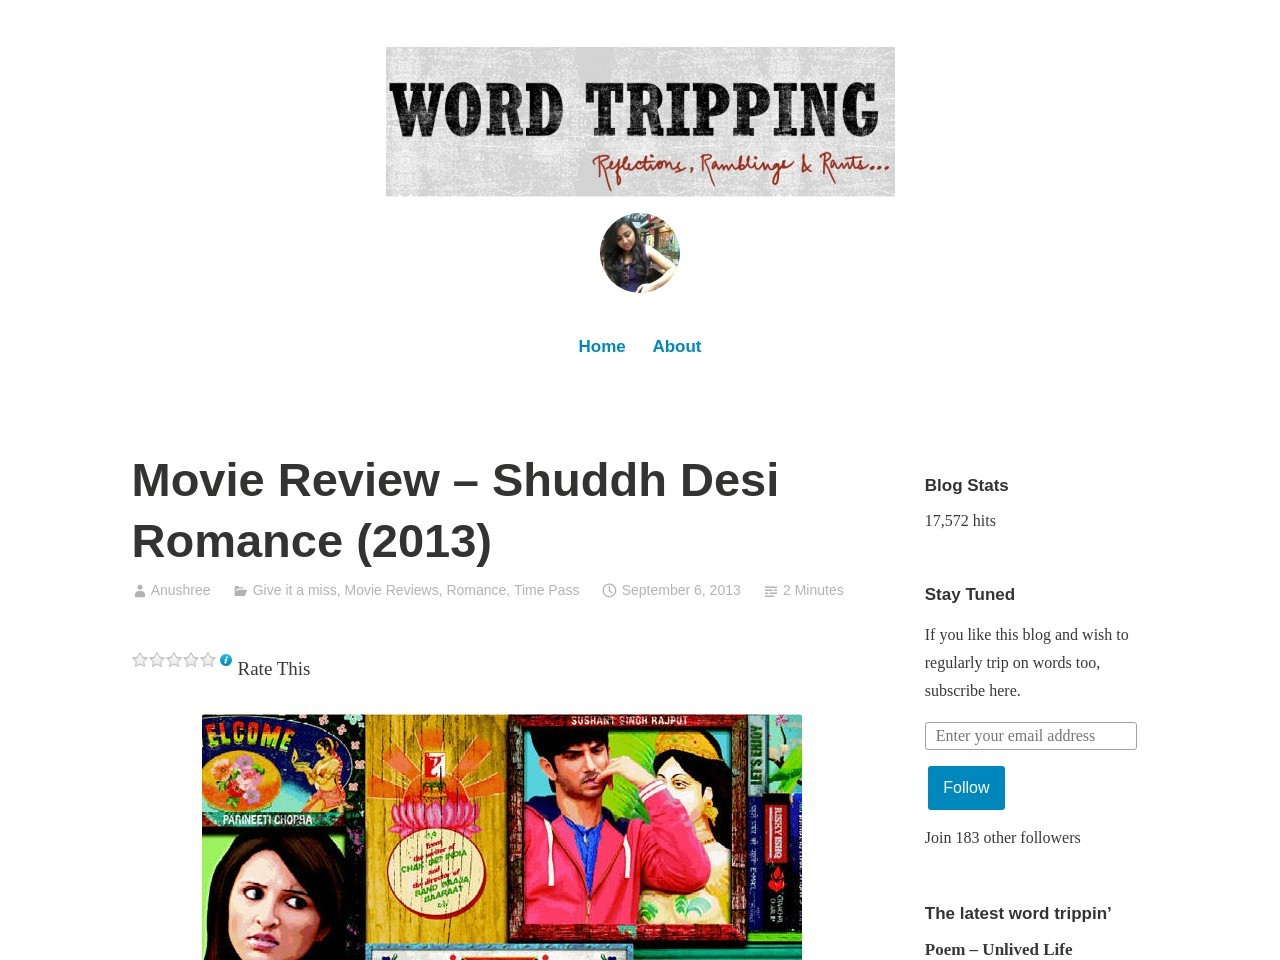 Movie Review – Shuddh Desi Romance (2013) | Word Tripping